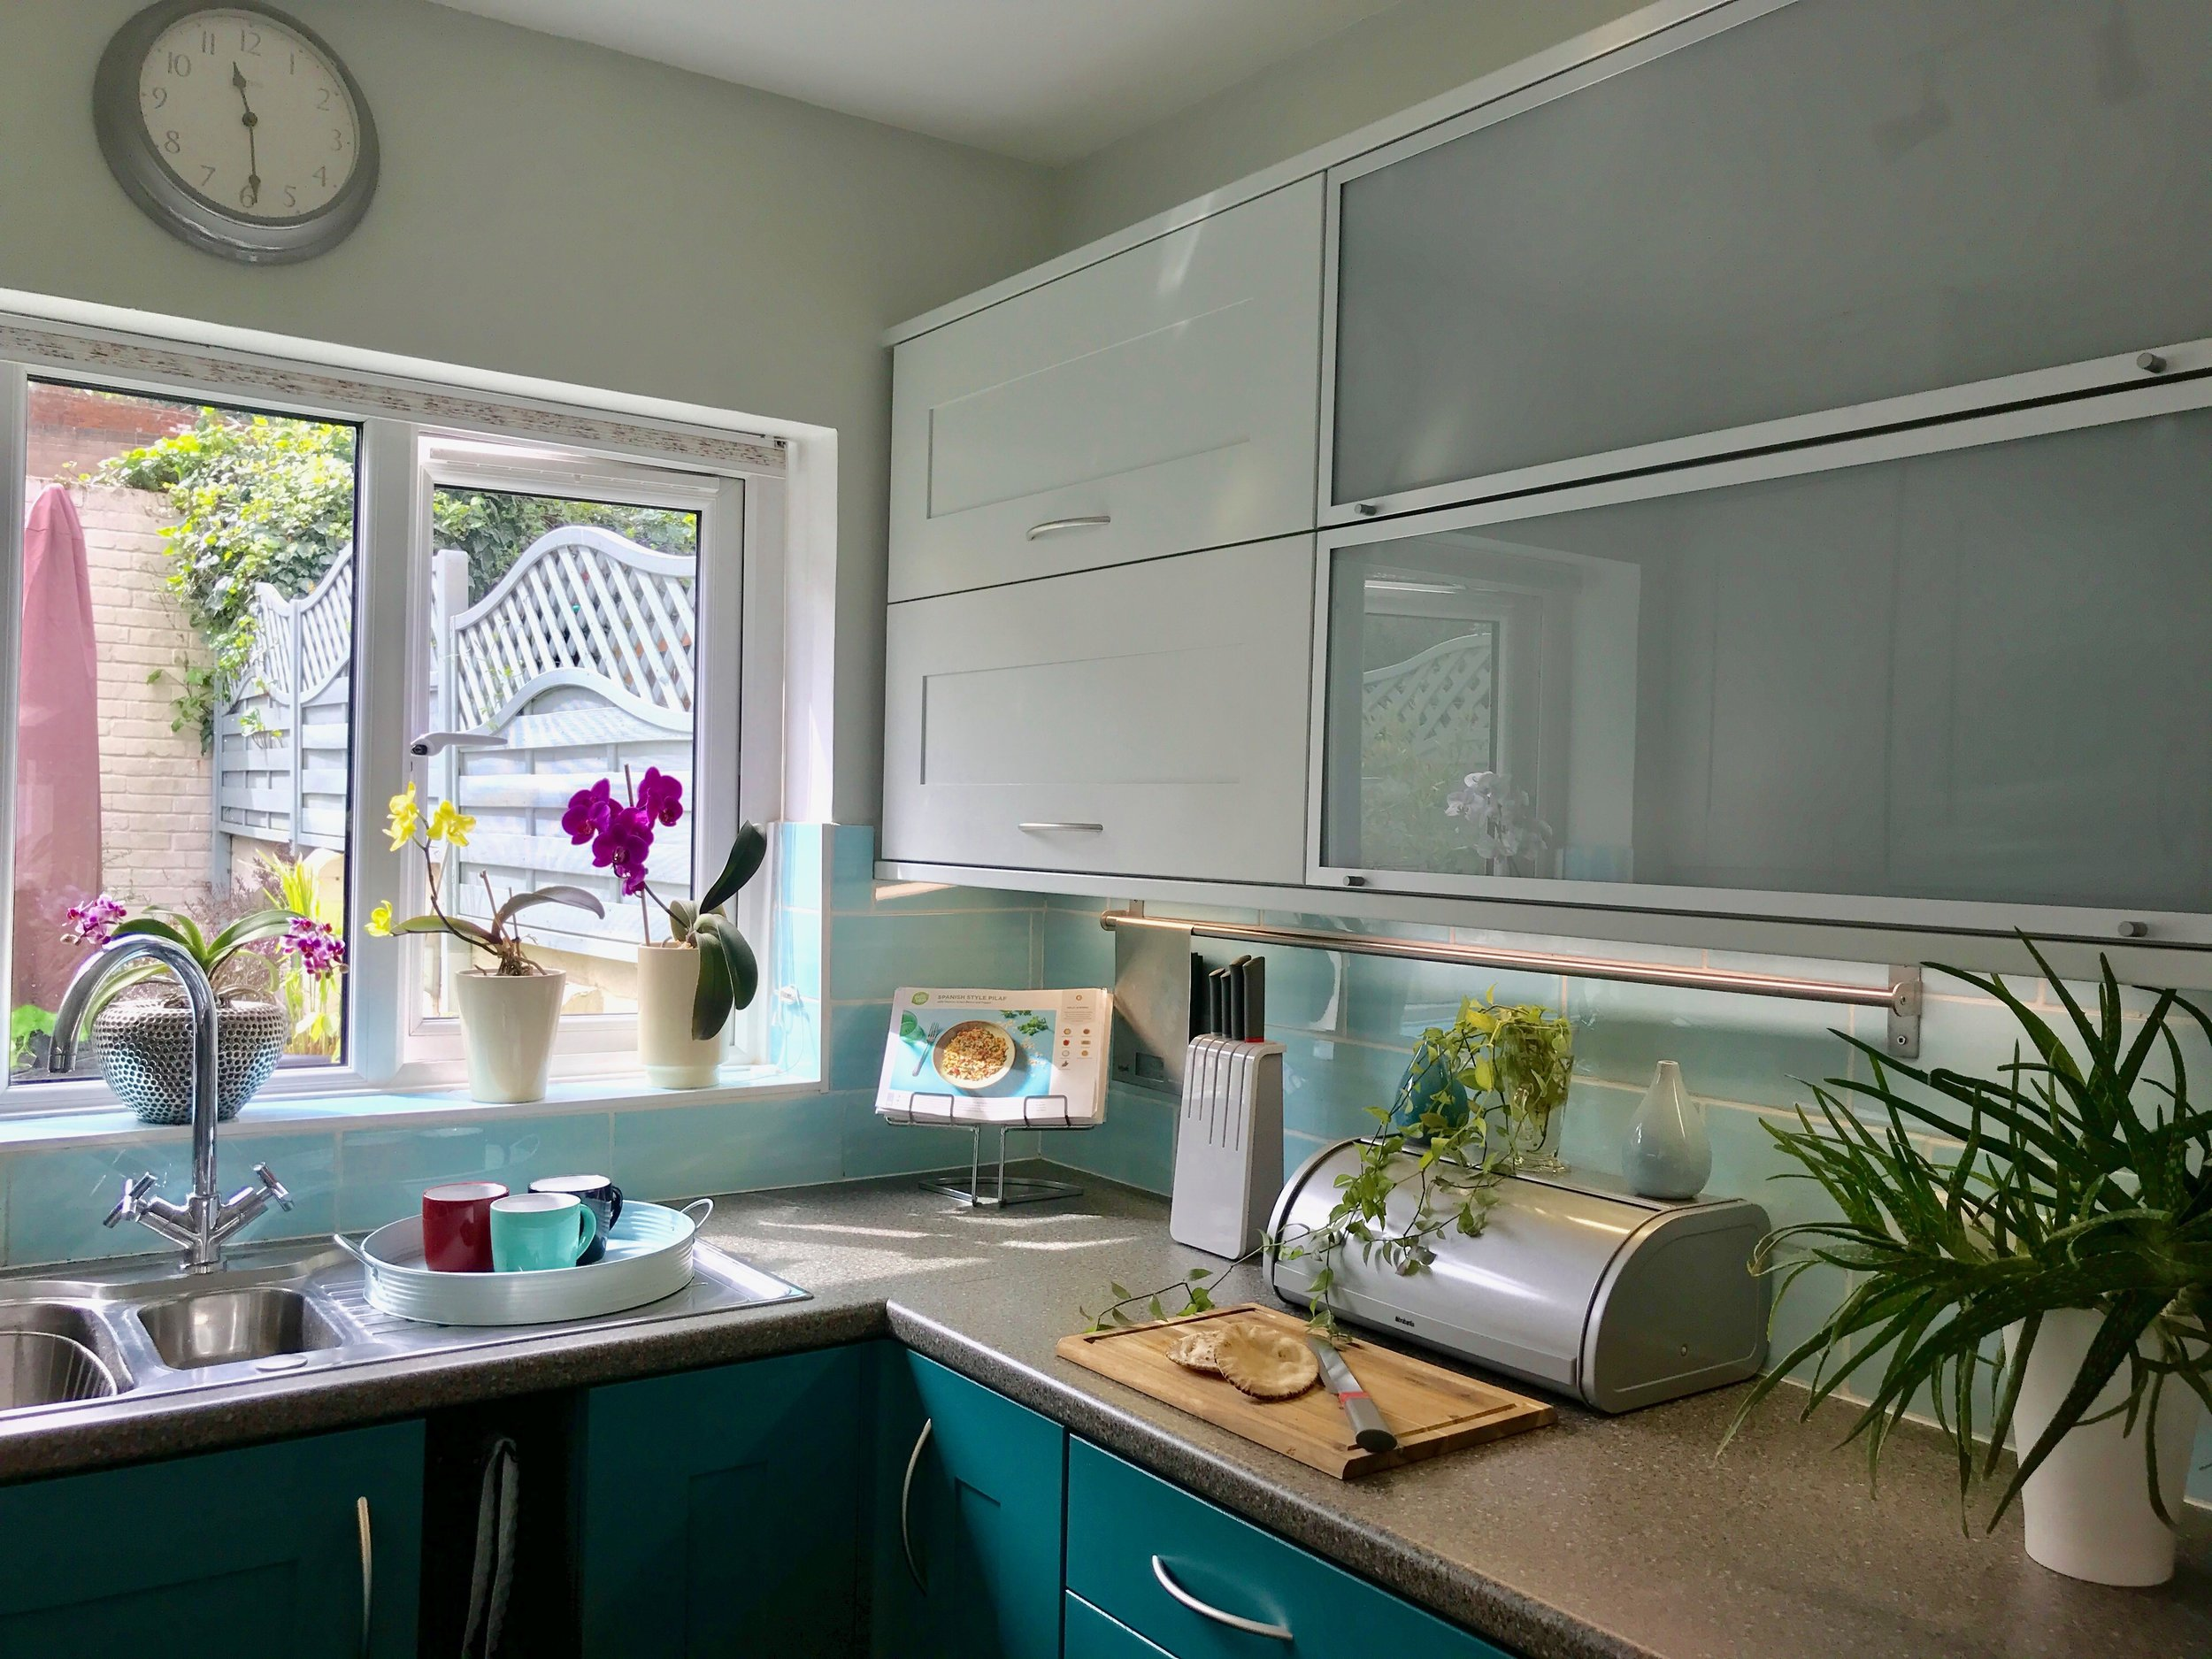 Walls and top cabinets in Pale Powder paint